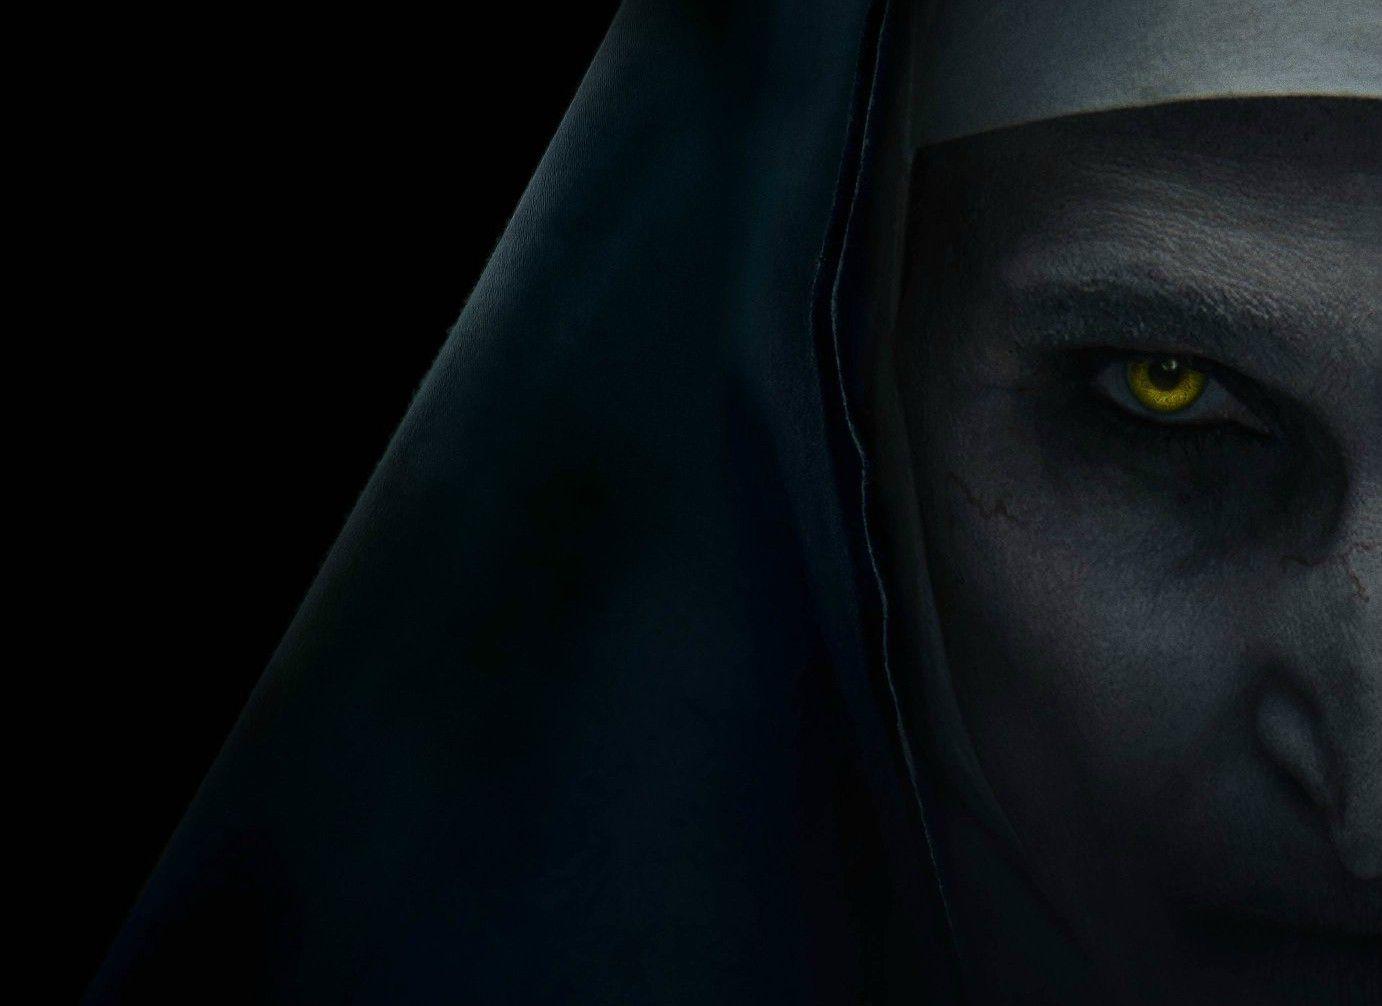 The Nun Poster Reveals the Latest The Conjuring Spinoff | Collider